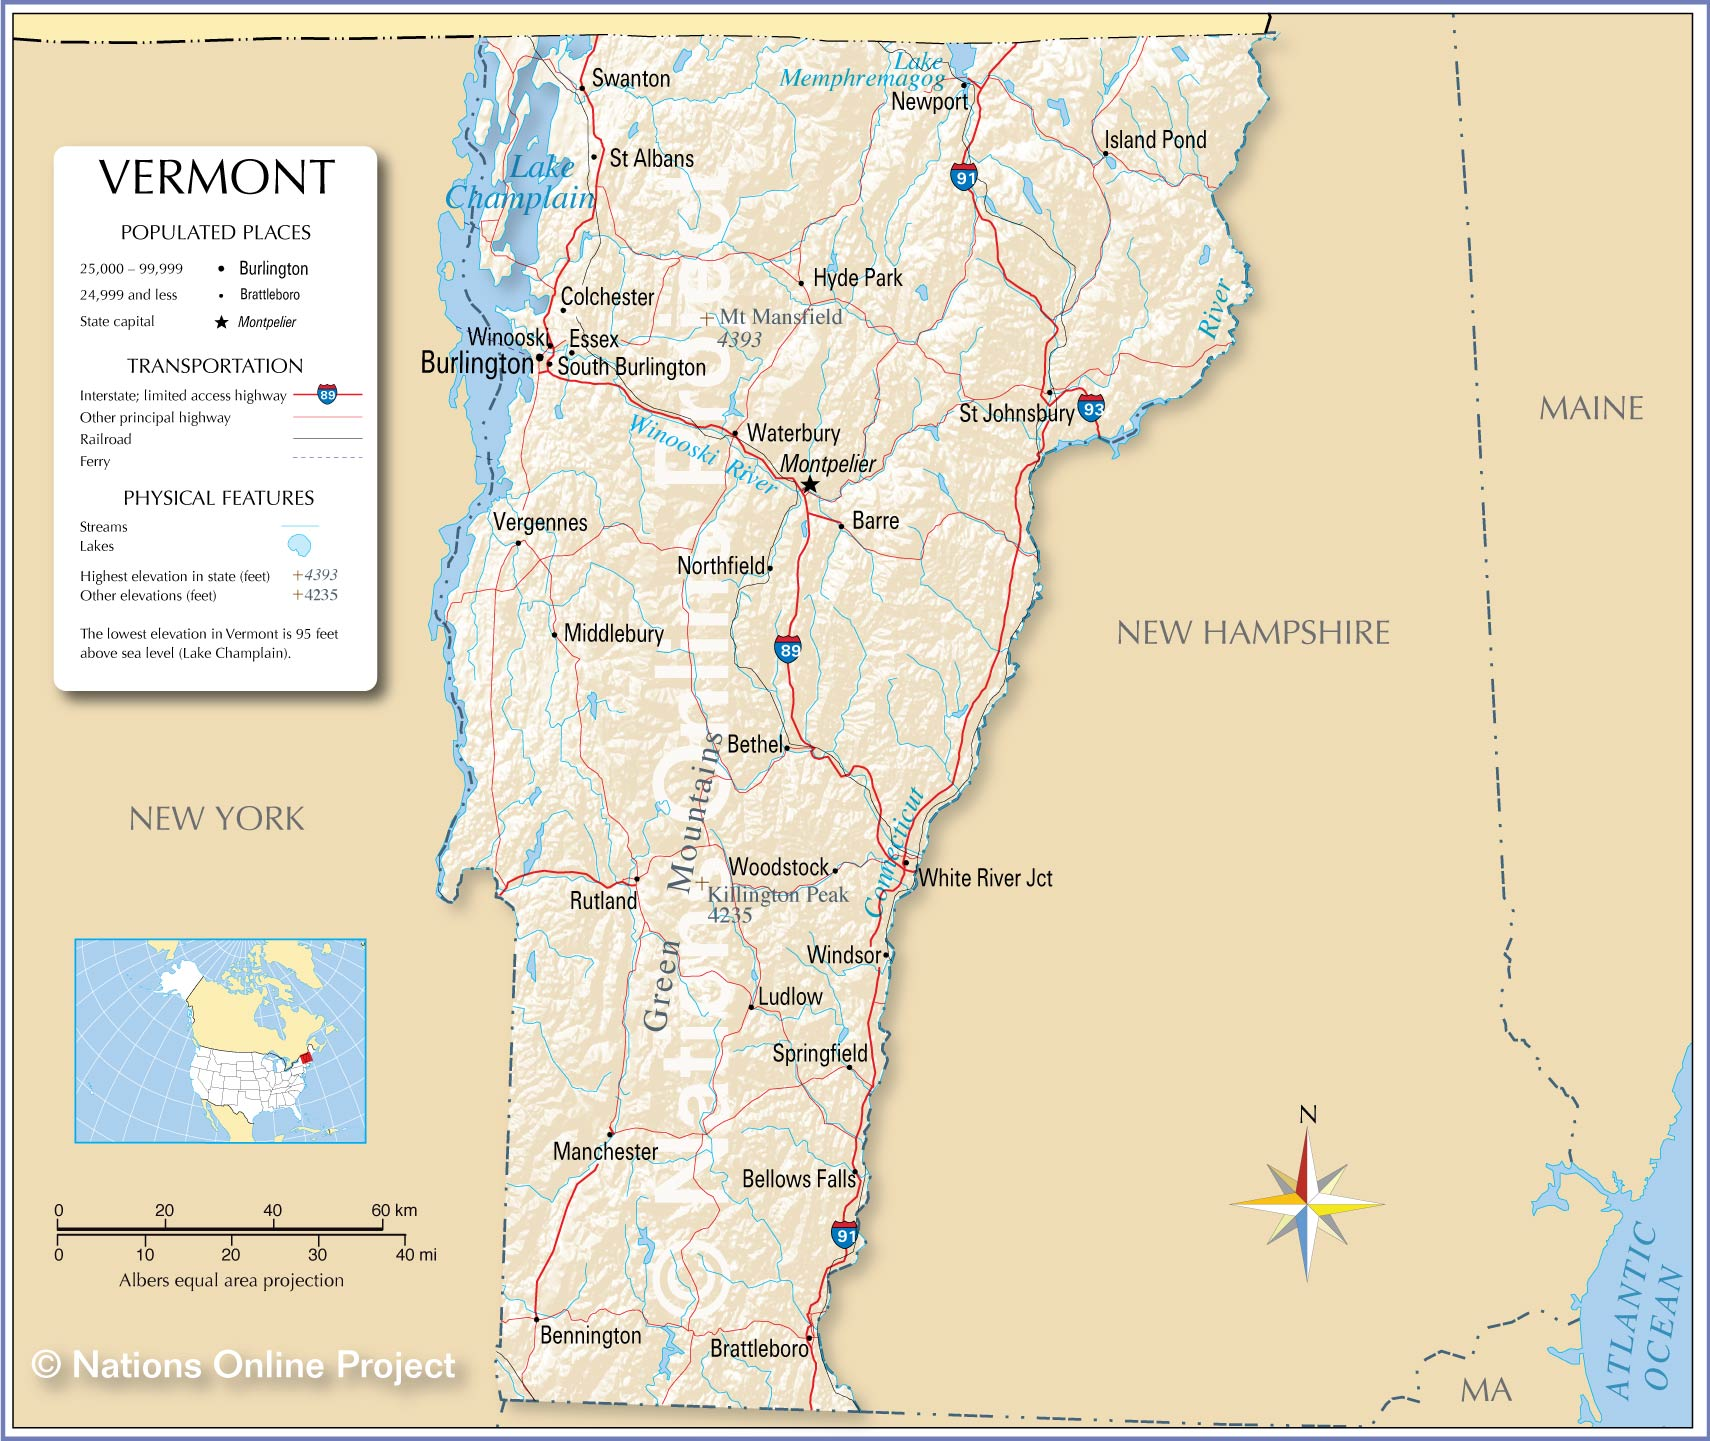 map of usa vermont Map Of The State Of Vermont Usa Nations Online Project map of usa vermont